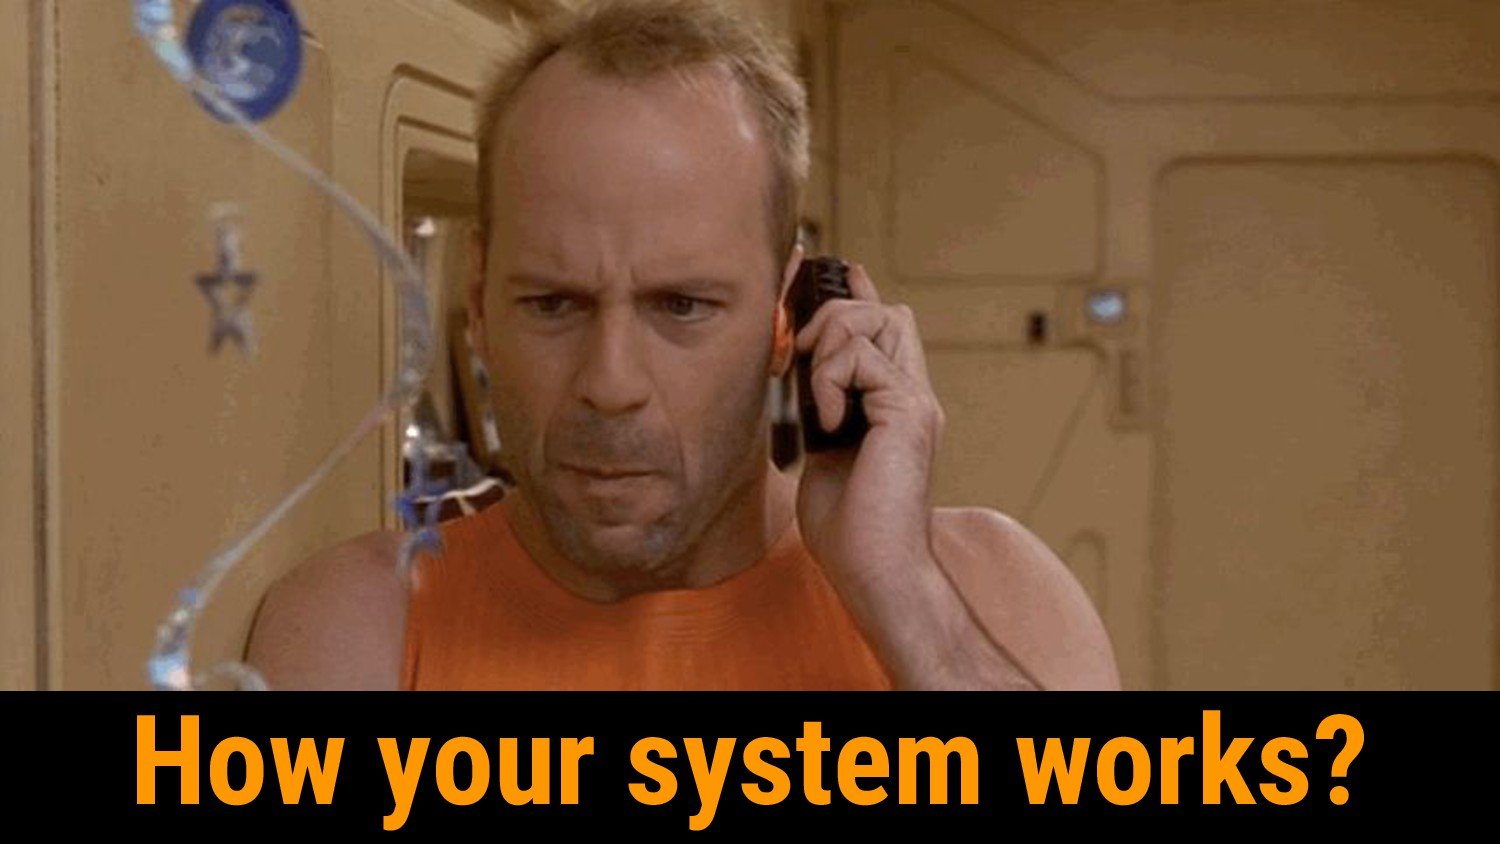 How your system works?